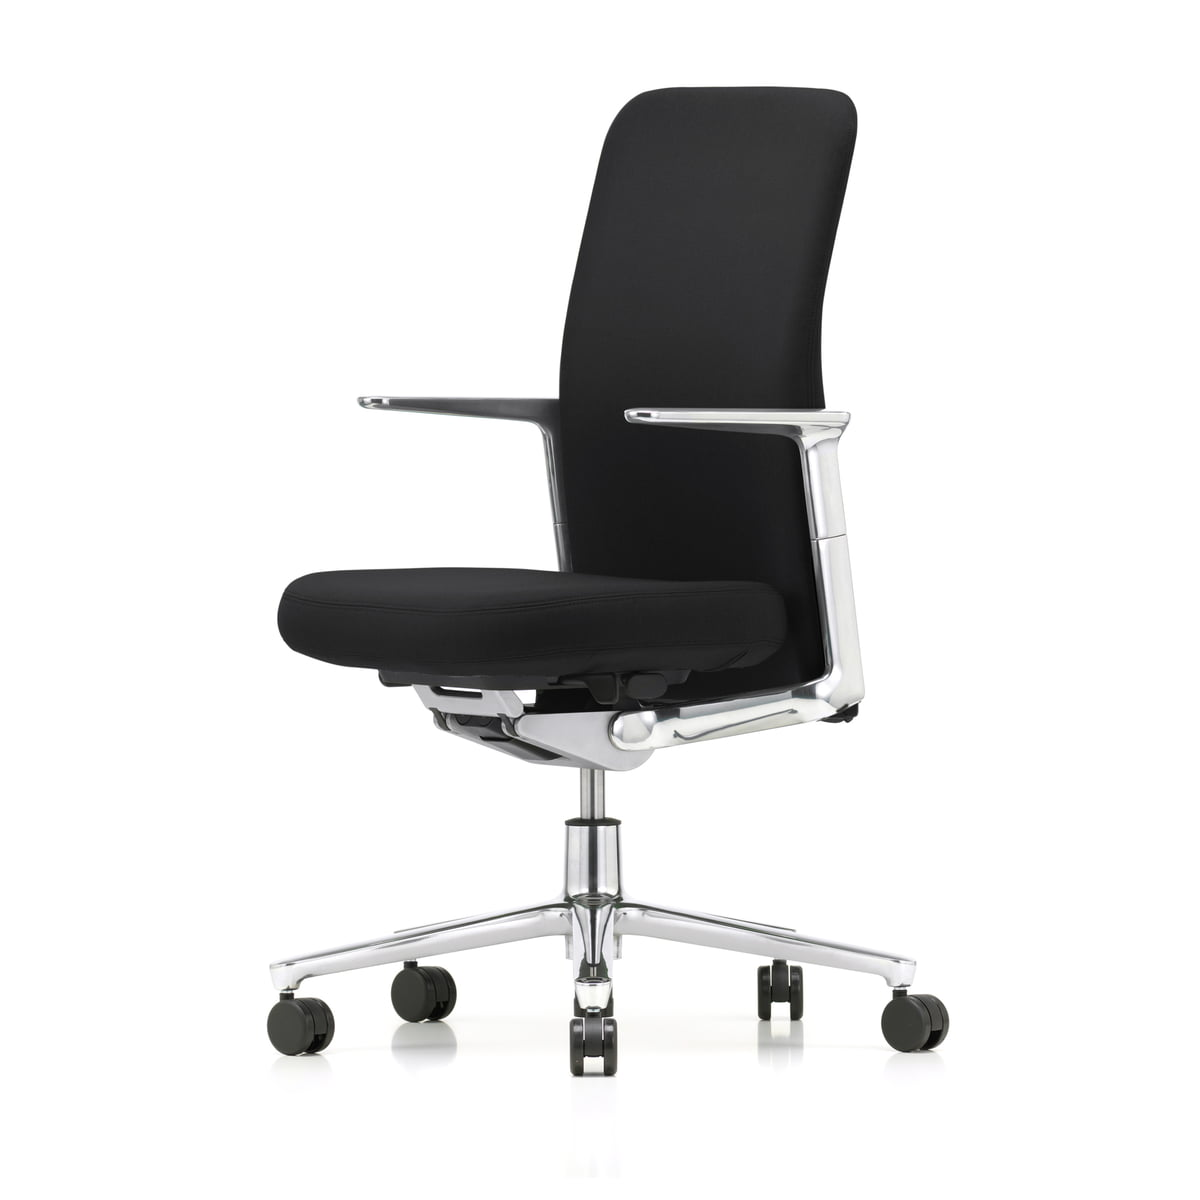 Pacific office chair by vitra connox for Vitra chair nachbau